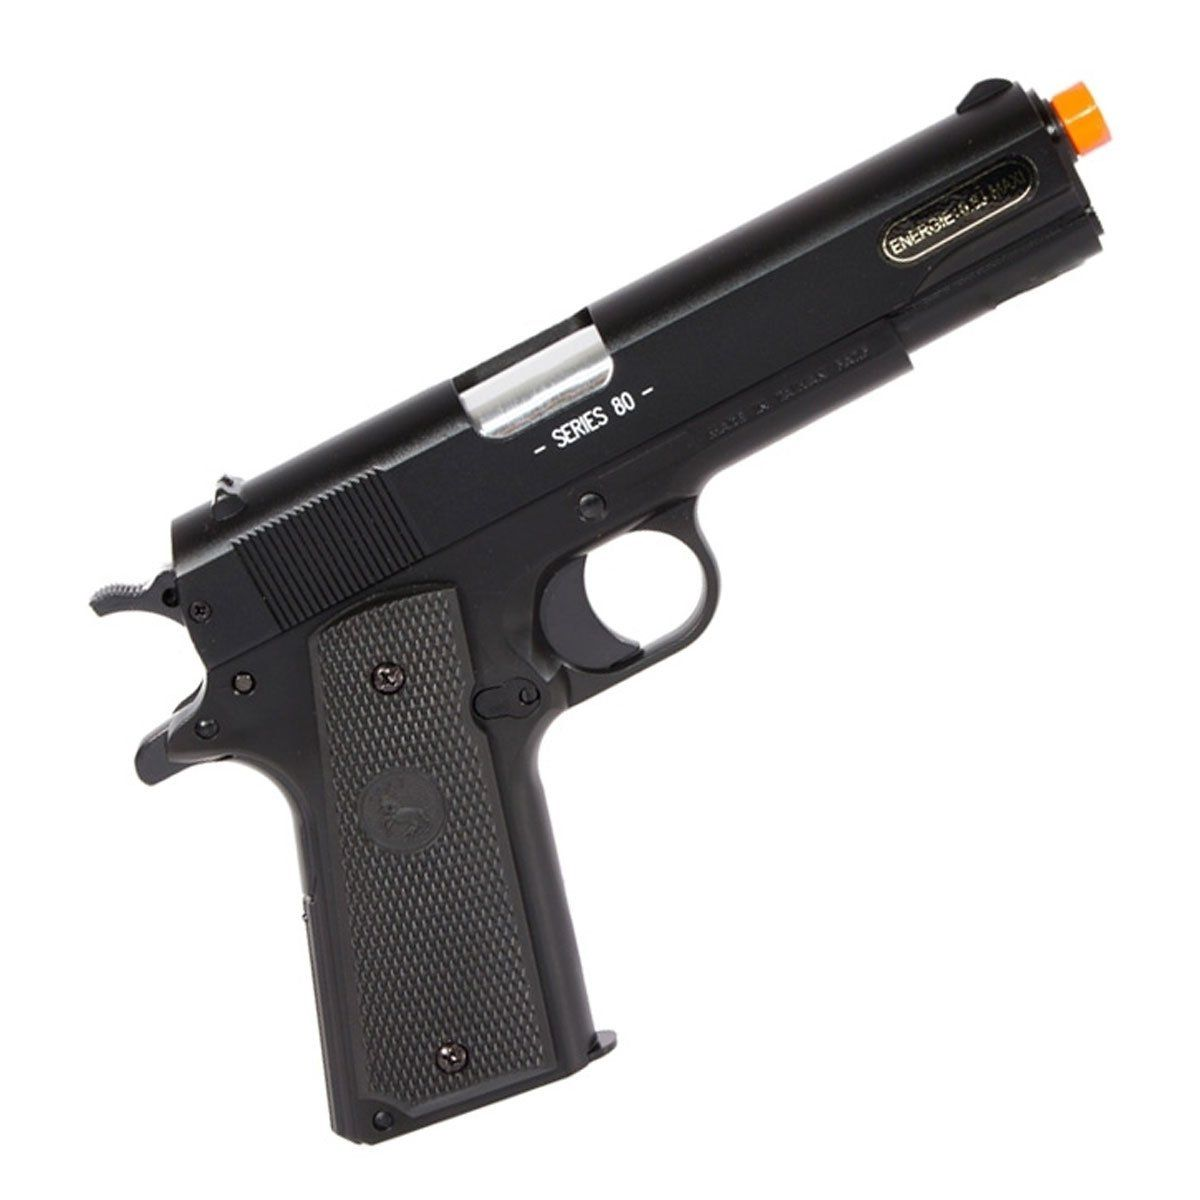 Pistola Airsoft Cybergun Colt 1911 Slide Metal Spring 6mm